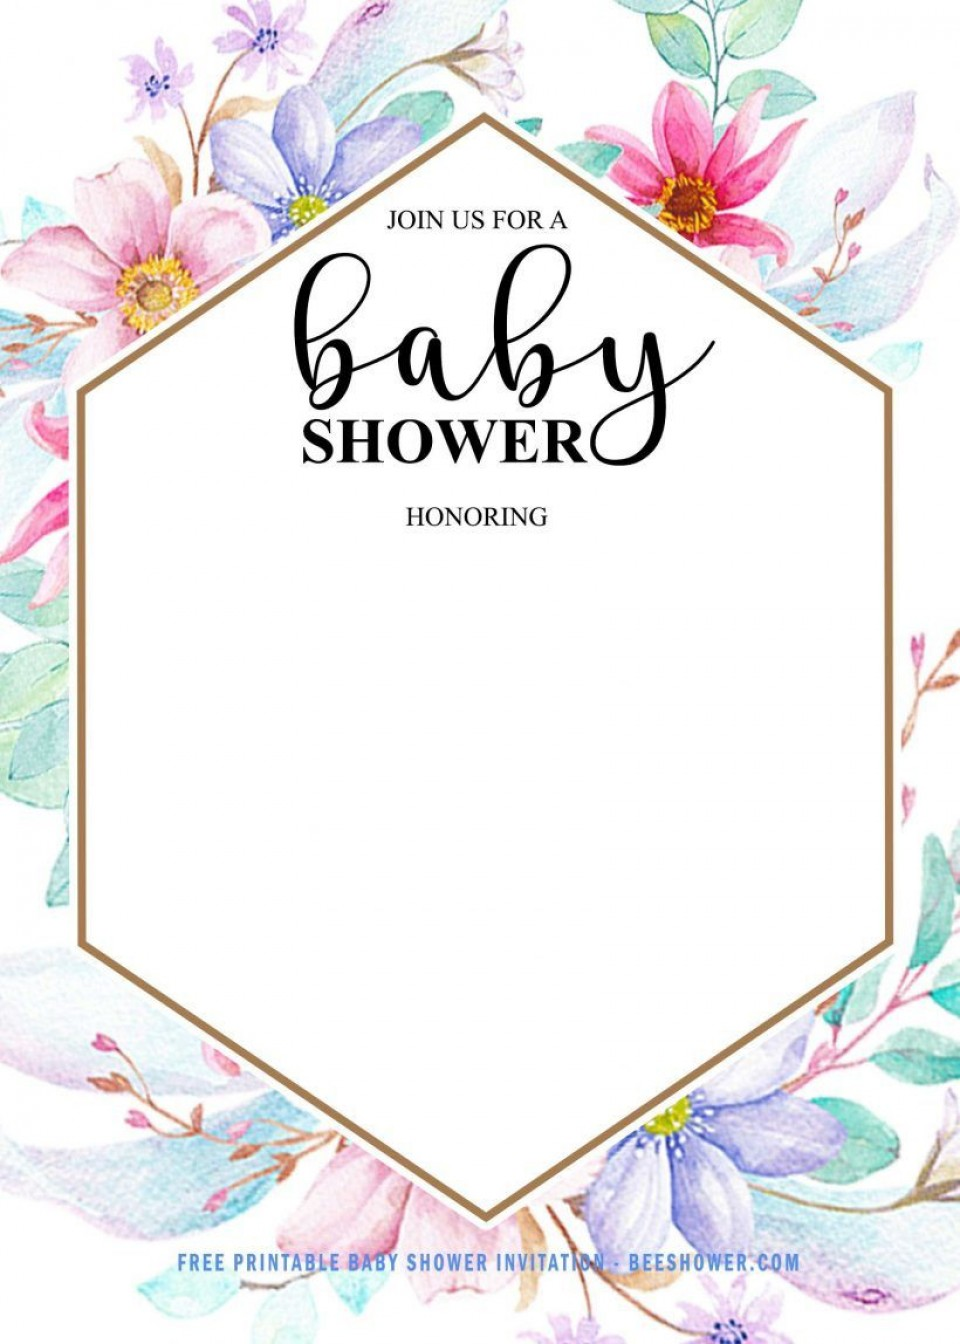 002 Beautiful Baby Shower Invitation Girl Free Printable Highest Clarity  Twin960